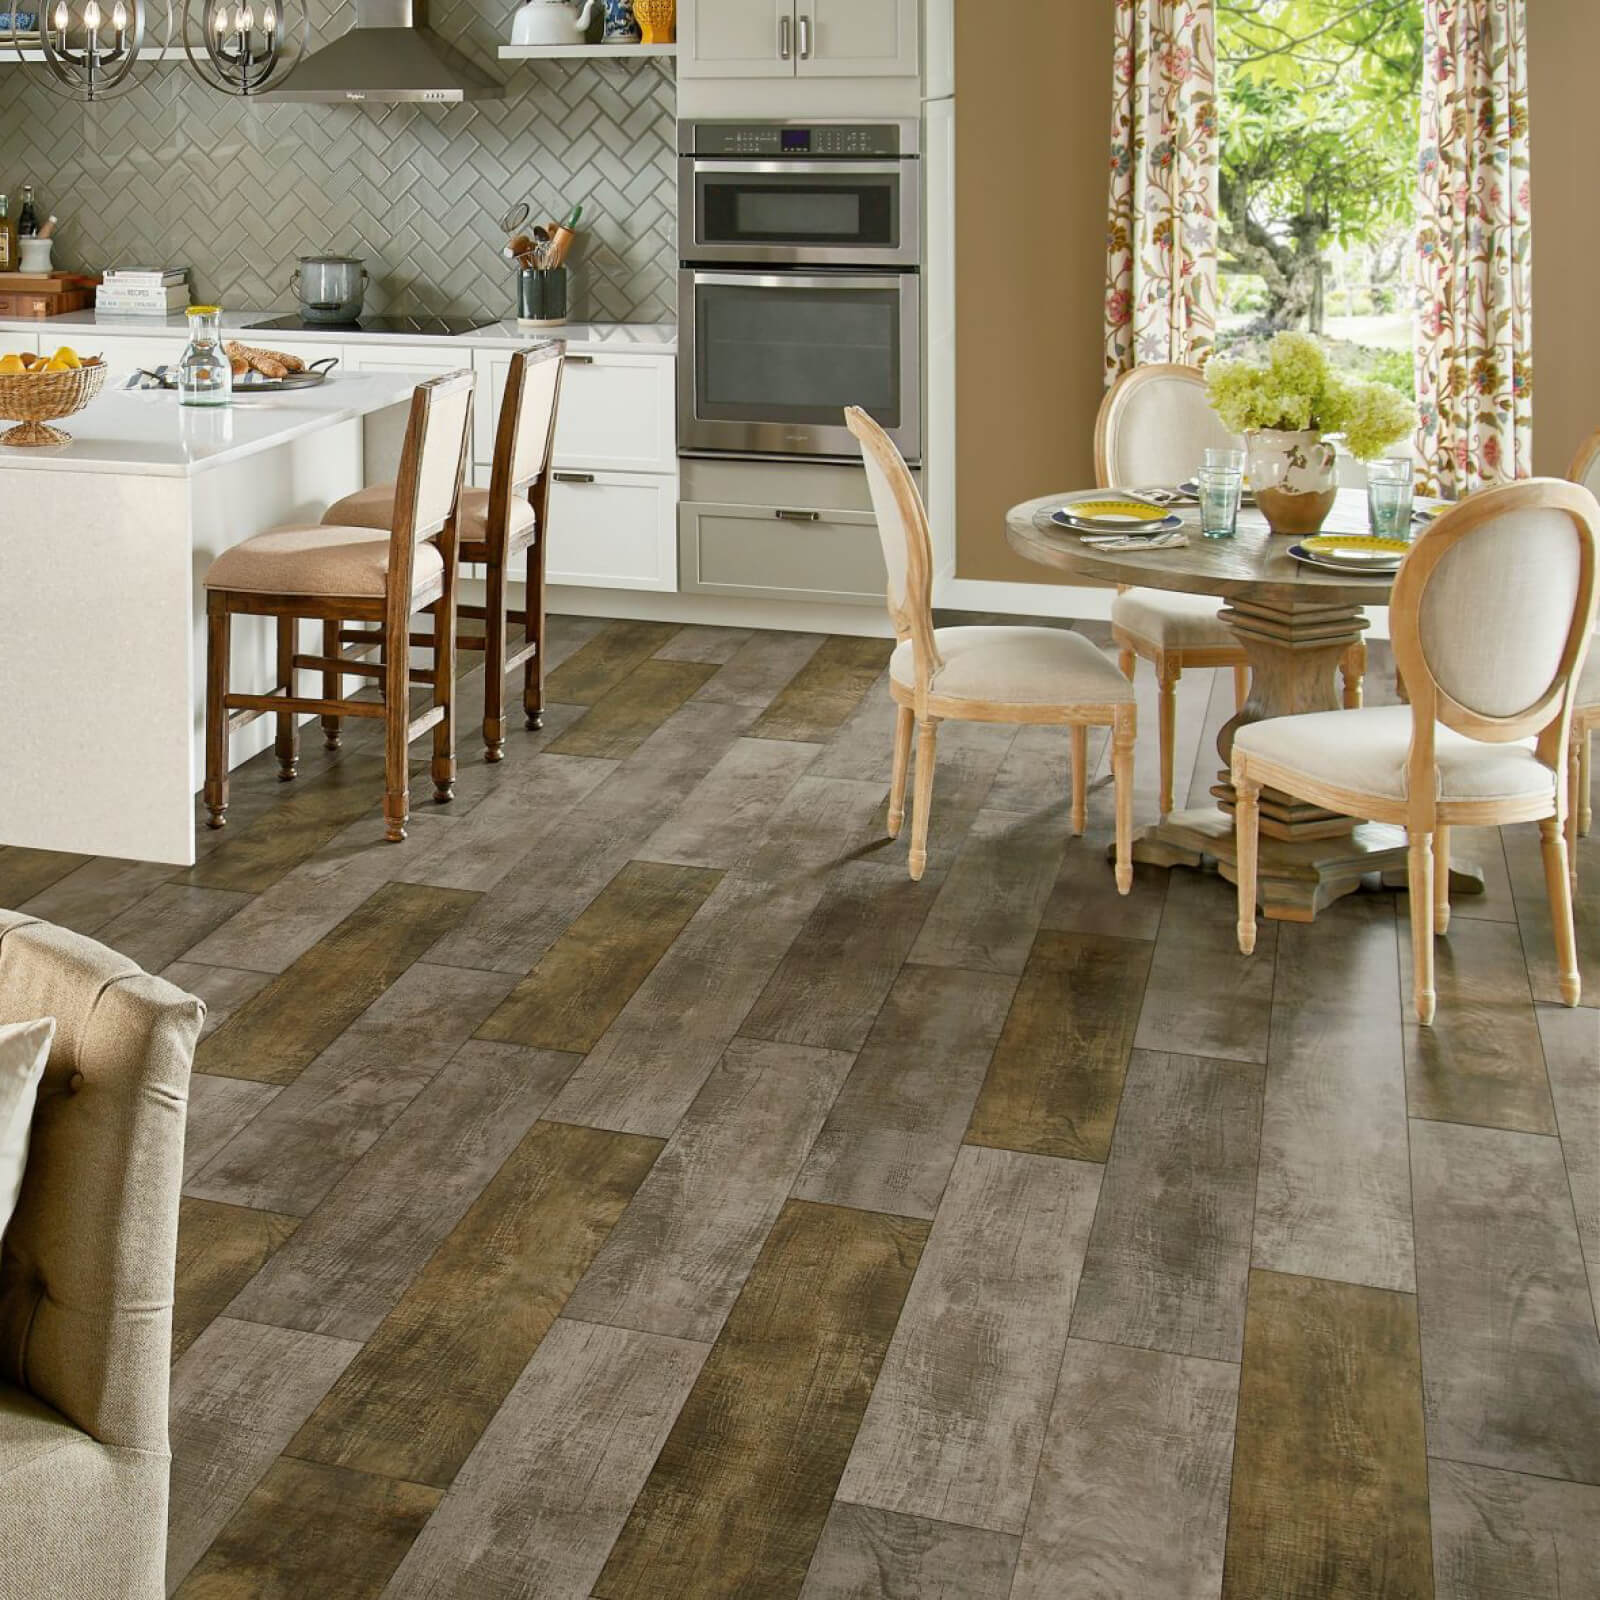 Homespun Harmony Luxury Vinyl Tile - Natural Burlap Vinyl Tile flooring | BMG Flooring & Tile Center